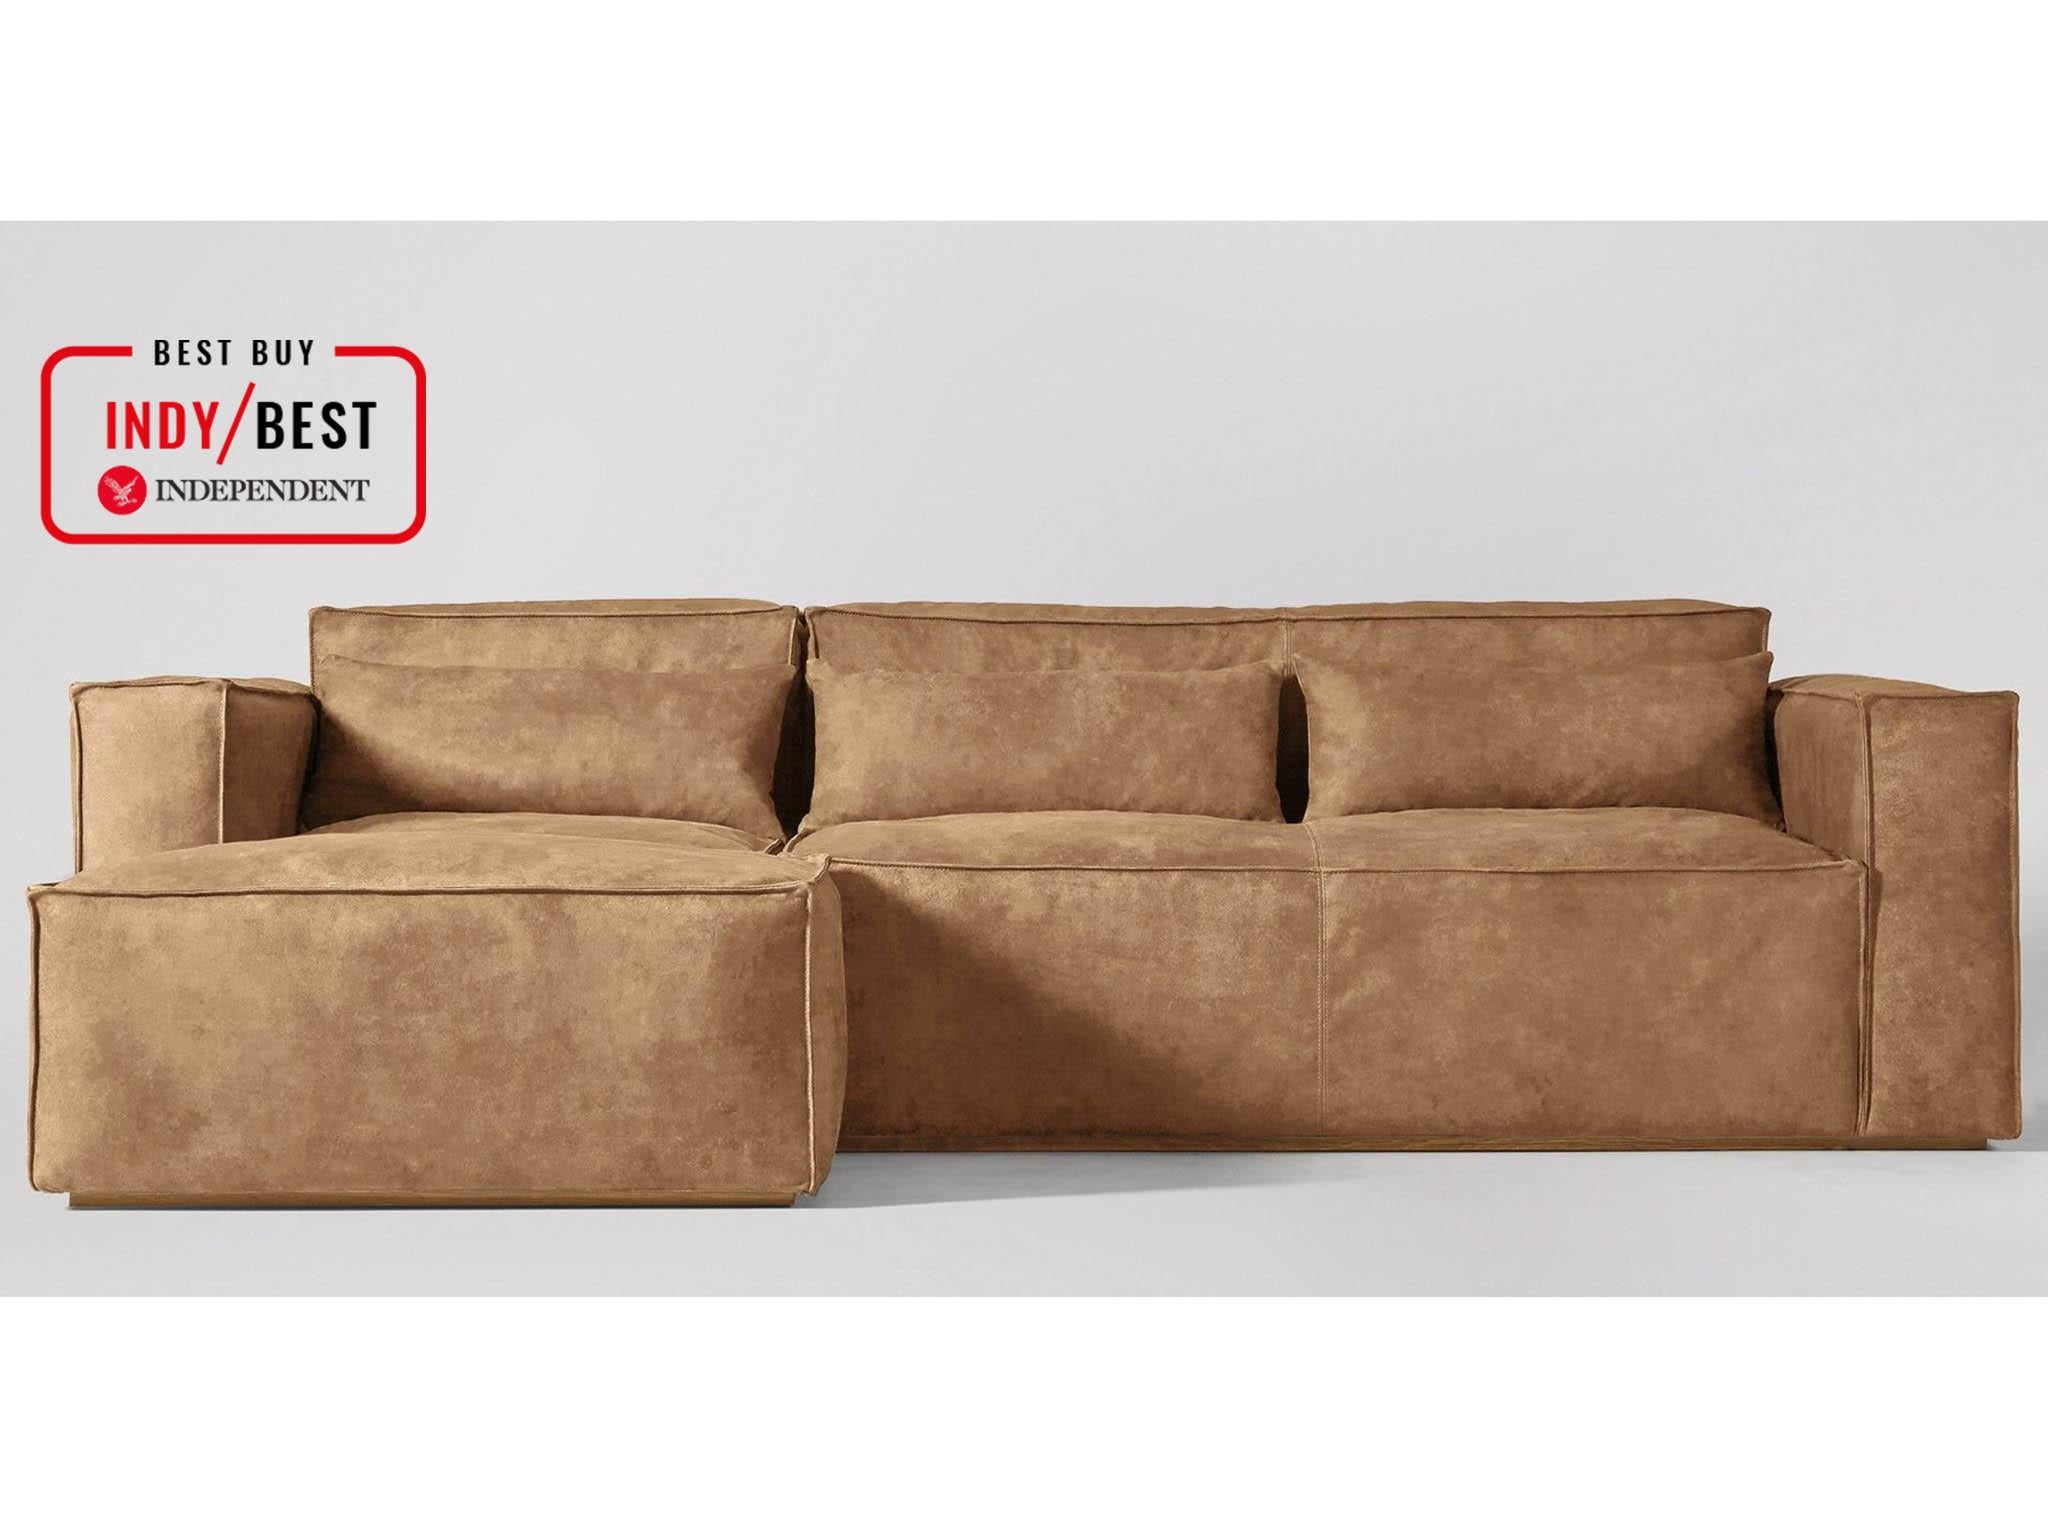 10 Best Leather Sofas The Independent